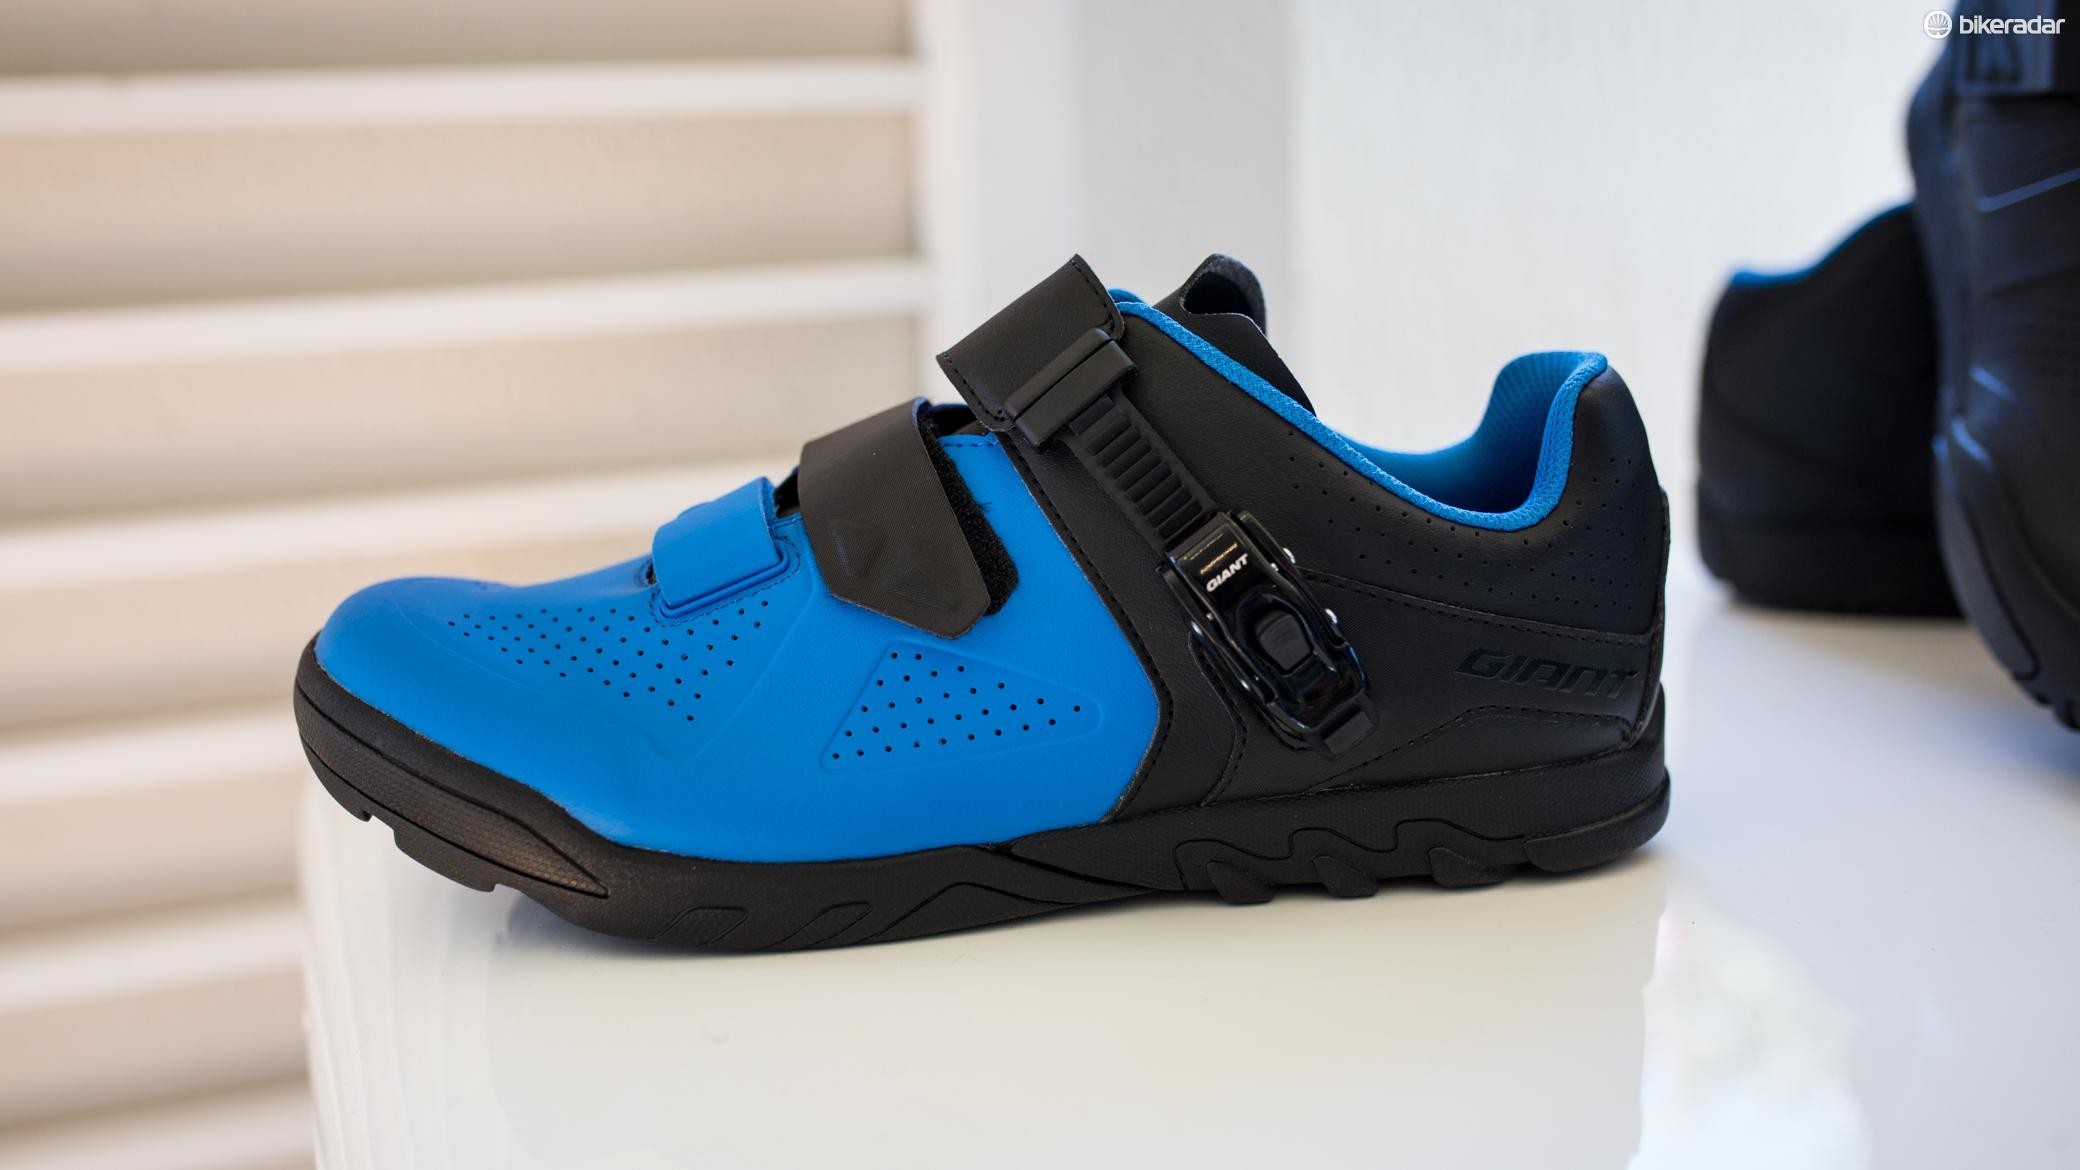 Giant's new Line Trail shoe is made from a hydrophobic upper